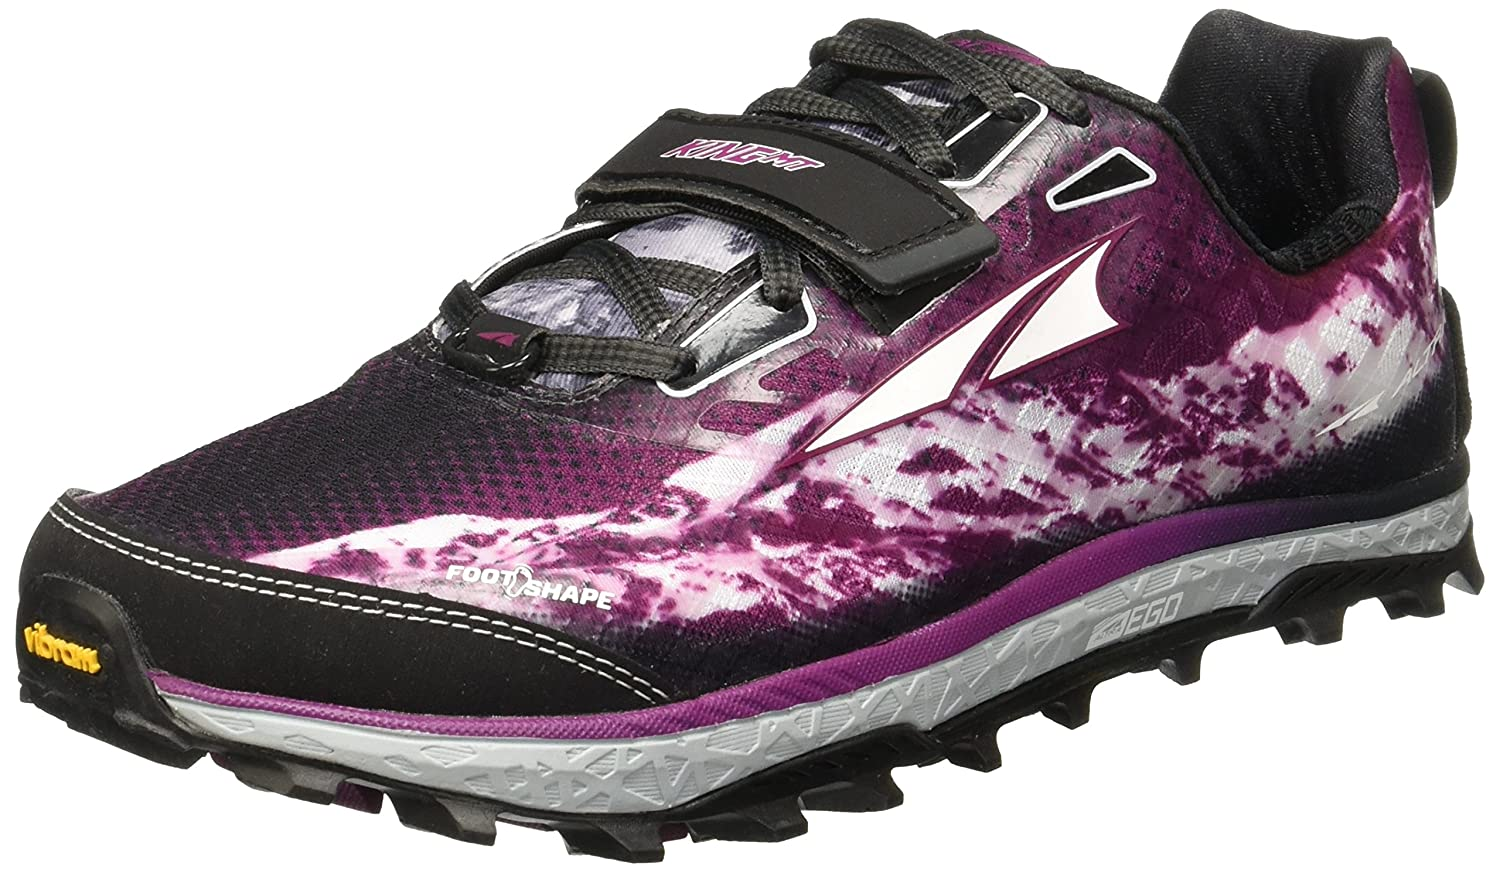 Altra King MT Trail Running Shoe - US|Gray Women's B01HNJW4TK 8.5 B(M) US|Gray - Magenta 2d4cac